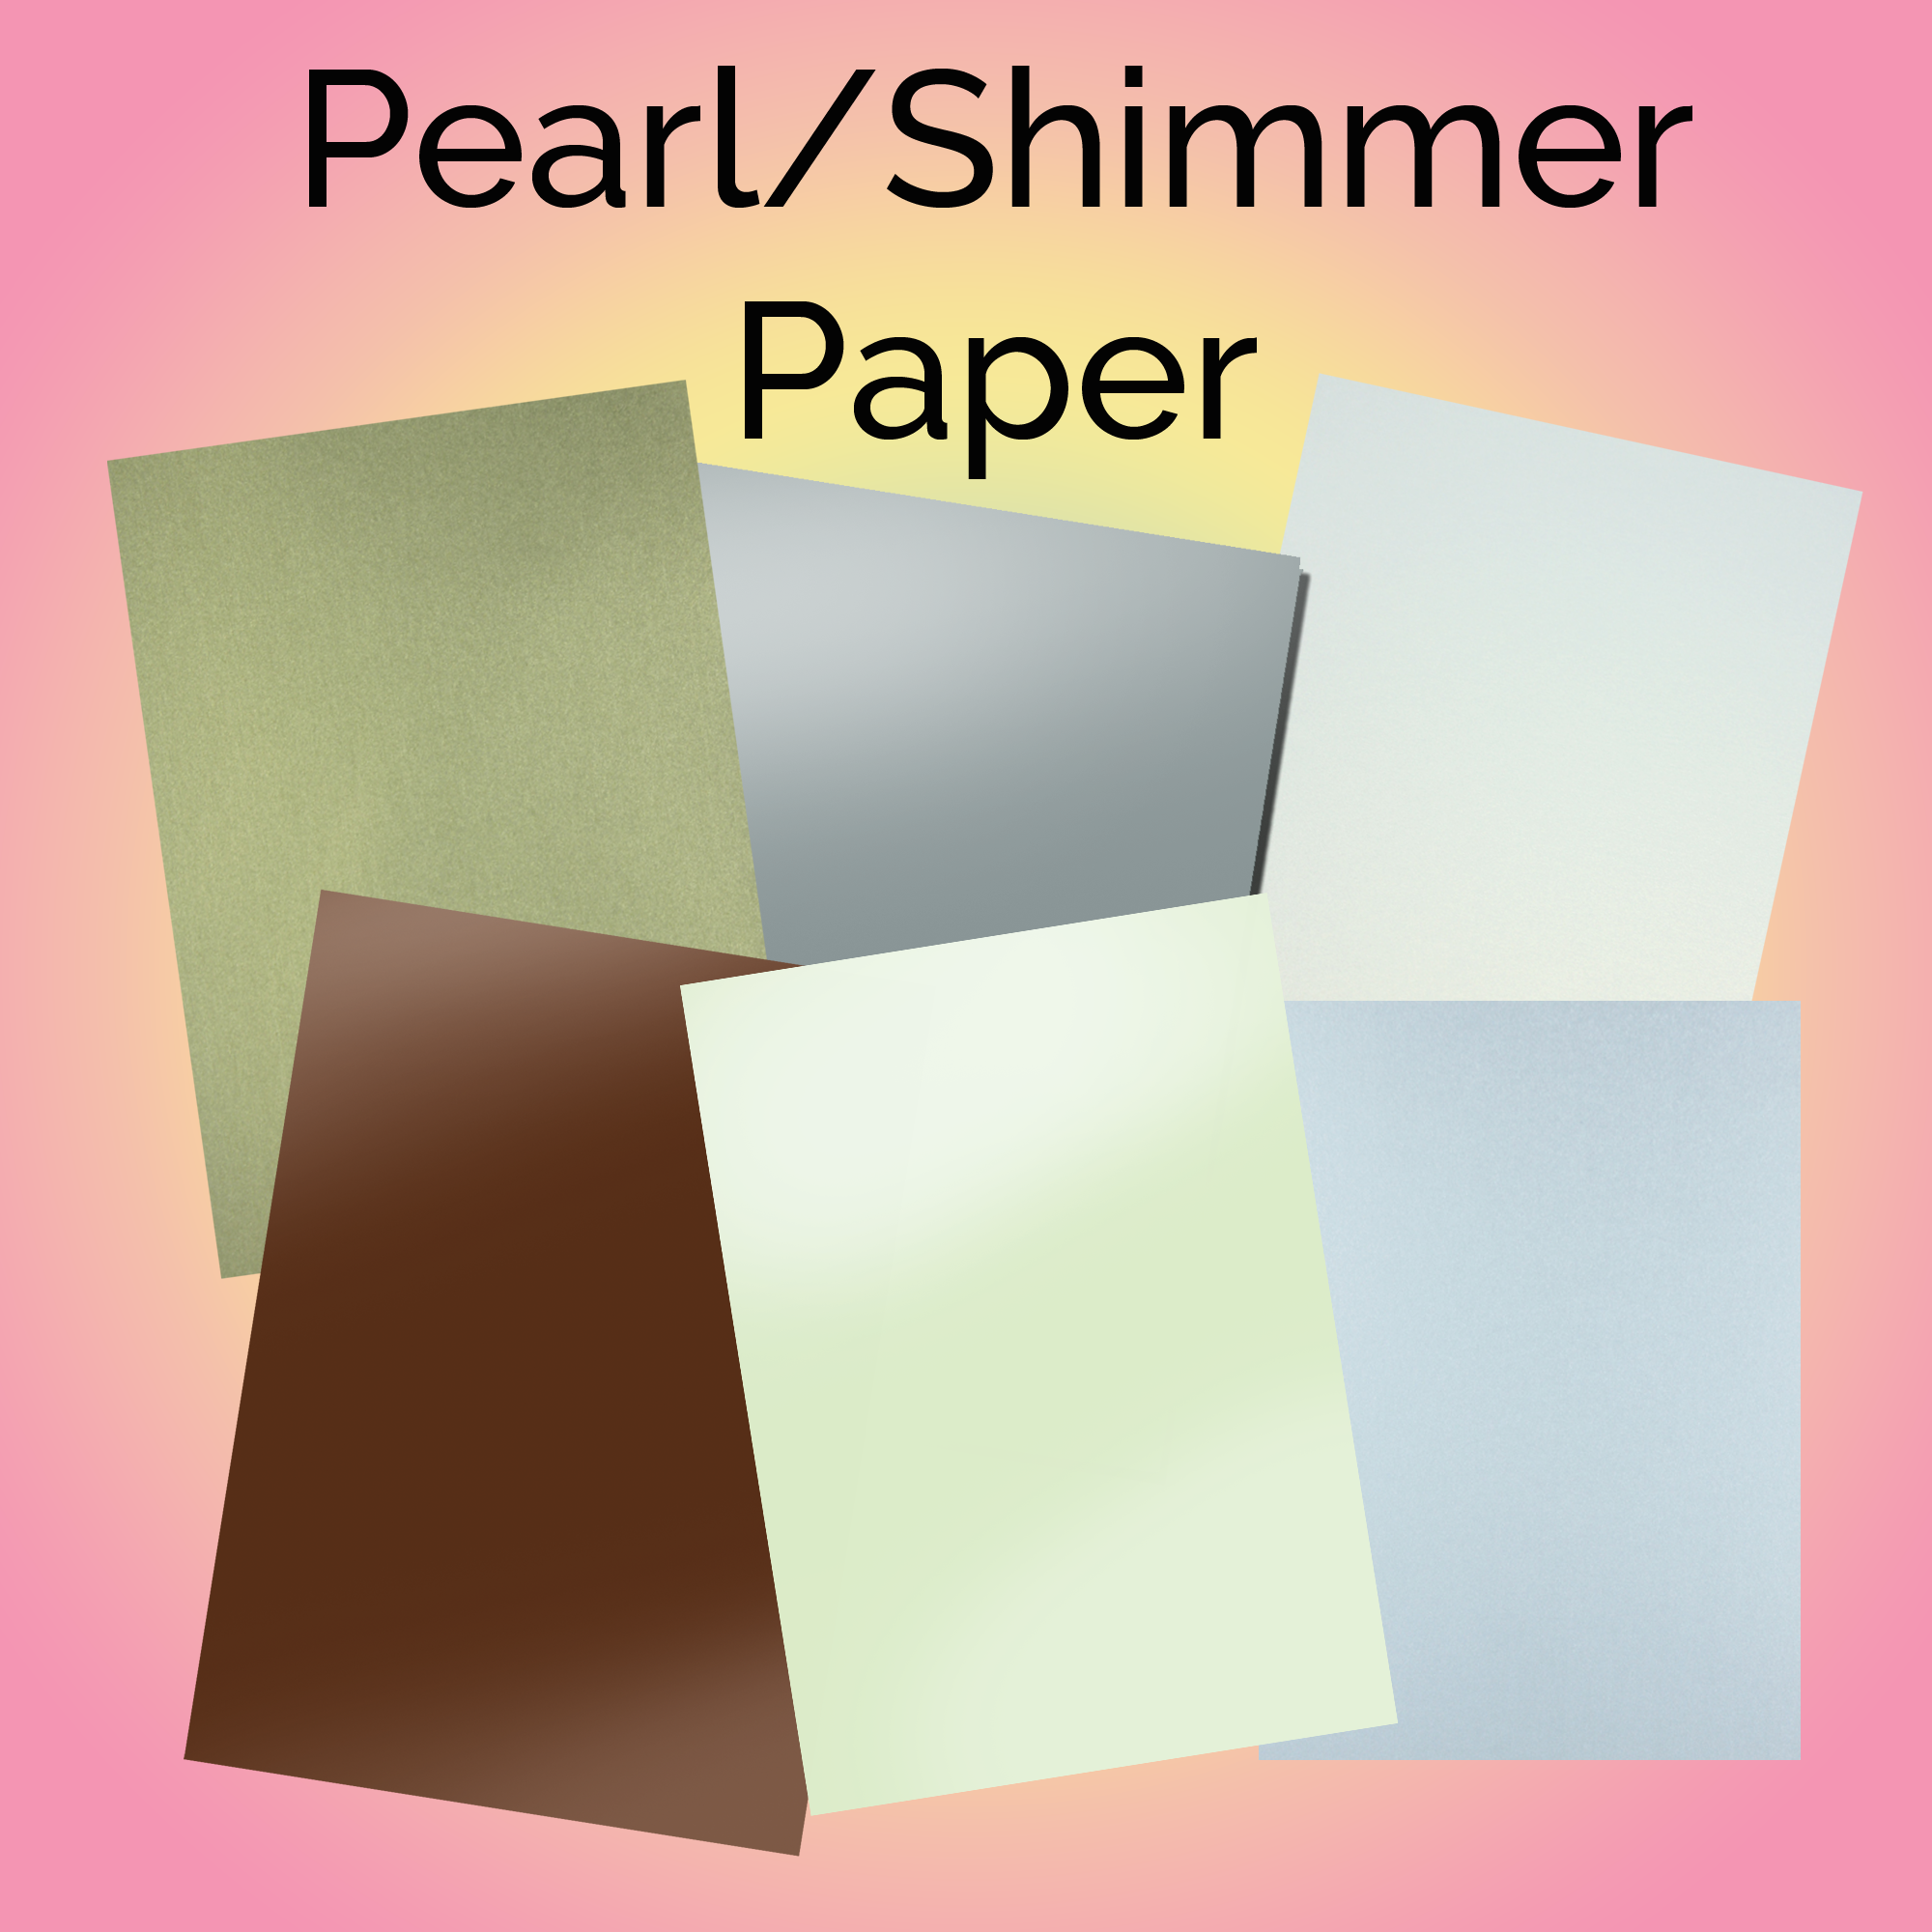 Pearl/Shimmer